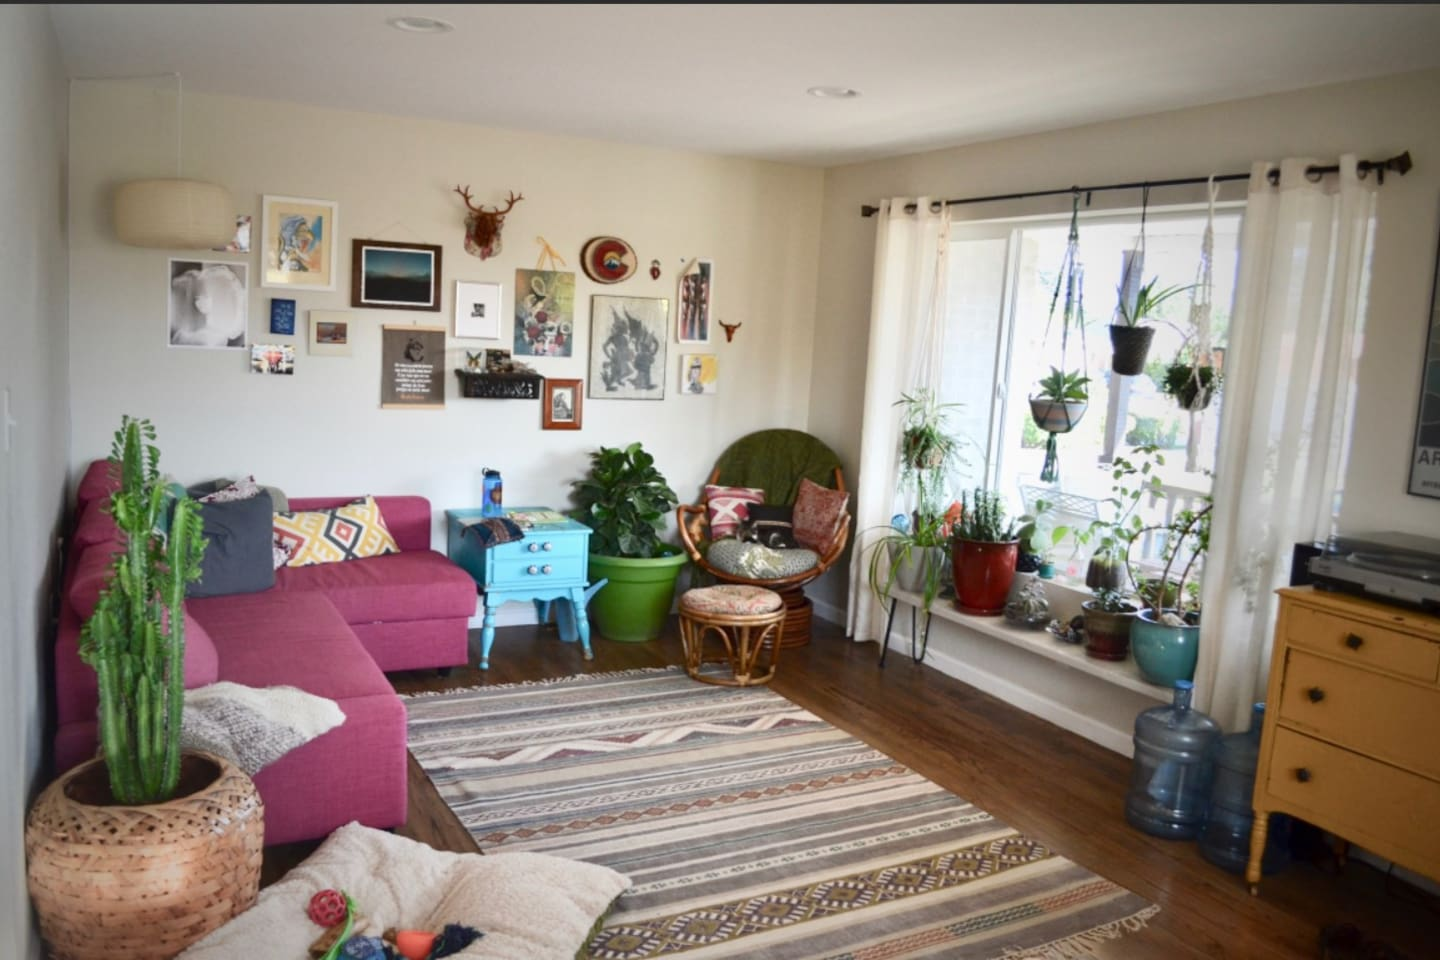 Our sunny living room is the perfect place to read or play a record!